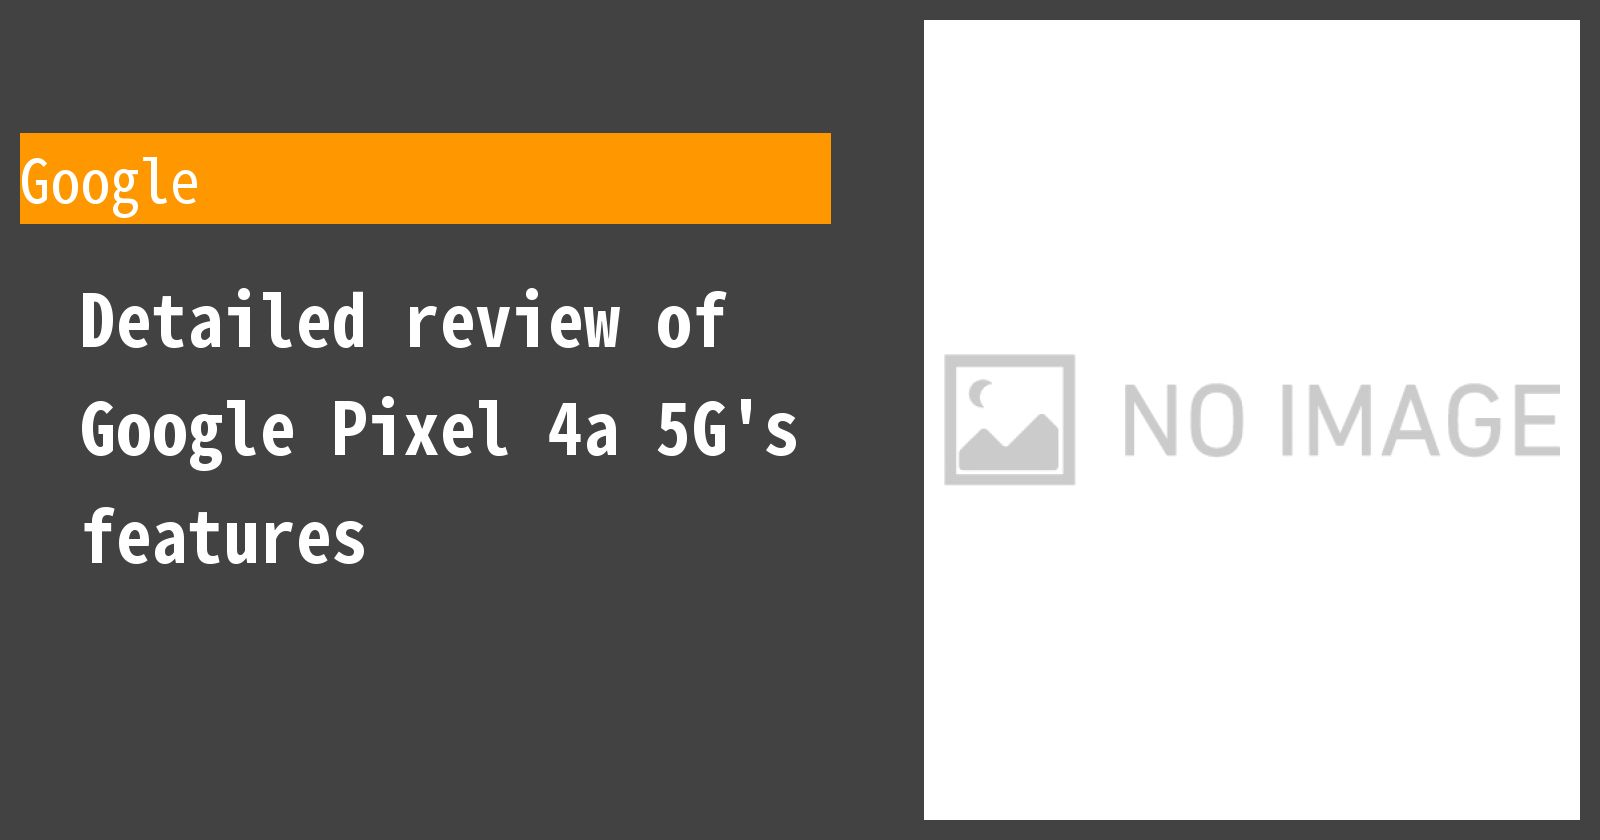 Detailed review of Google Pixel 4a 5G's features